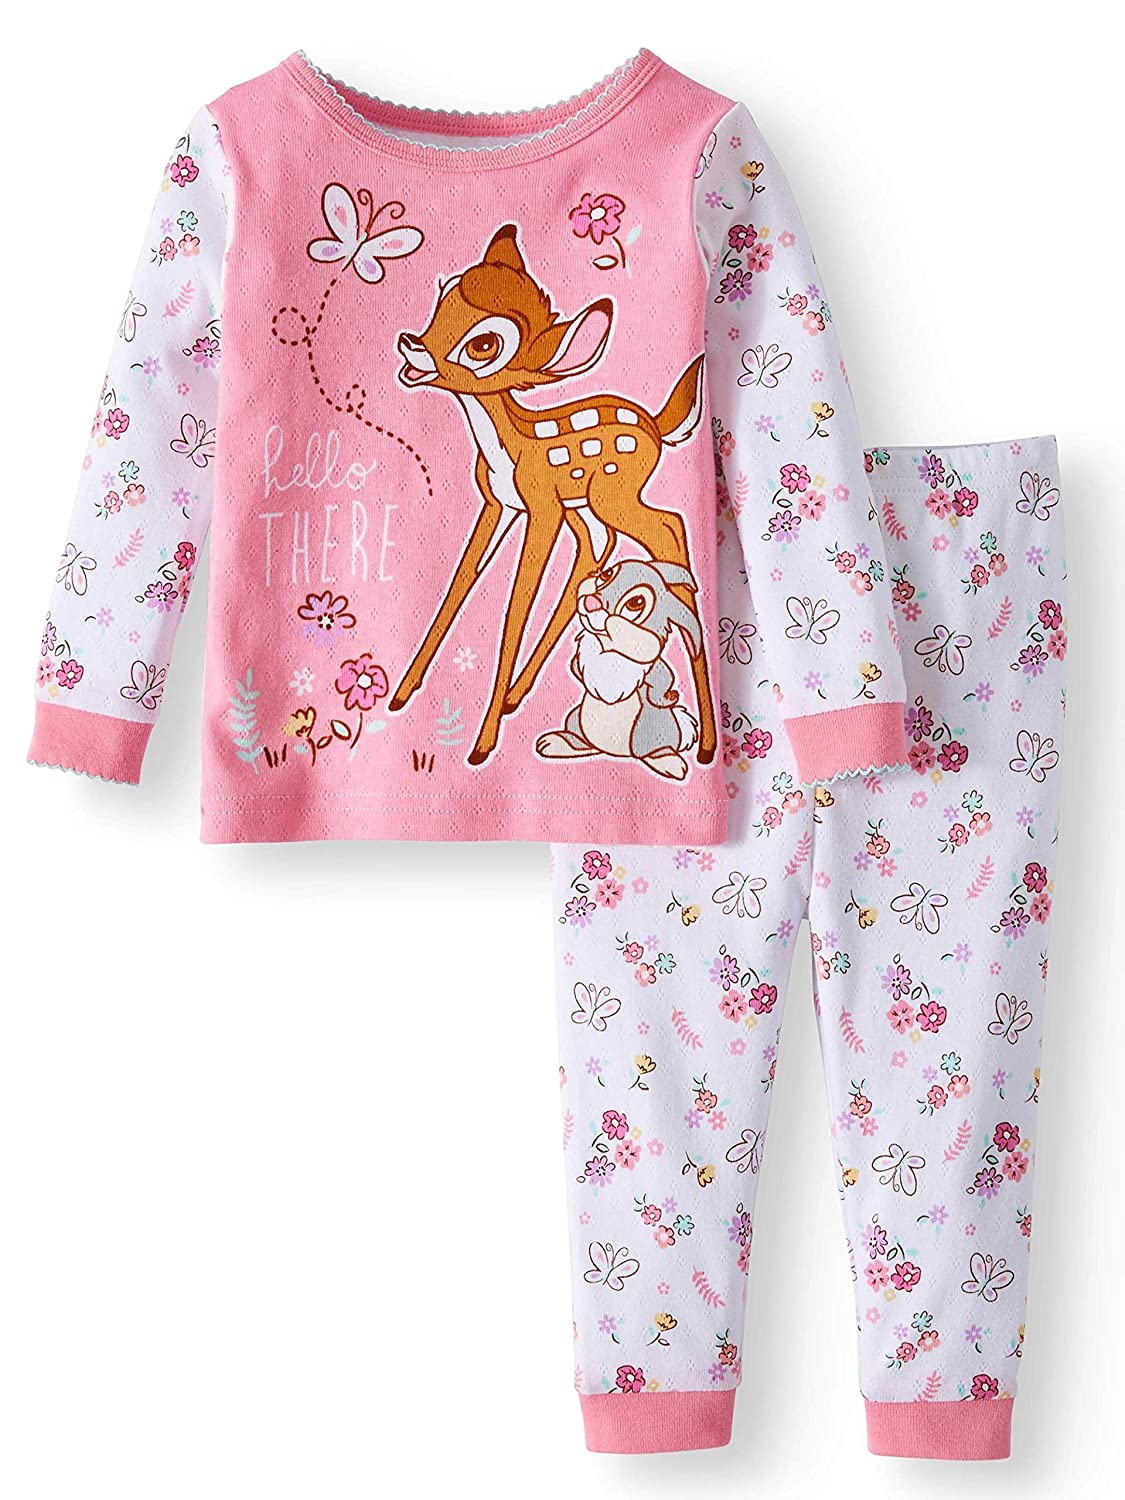 Disney Bambi Thumper Hello There Baby Girl 2 Piece Sleepwear Pajama Set